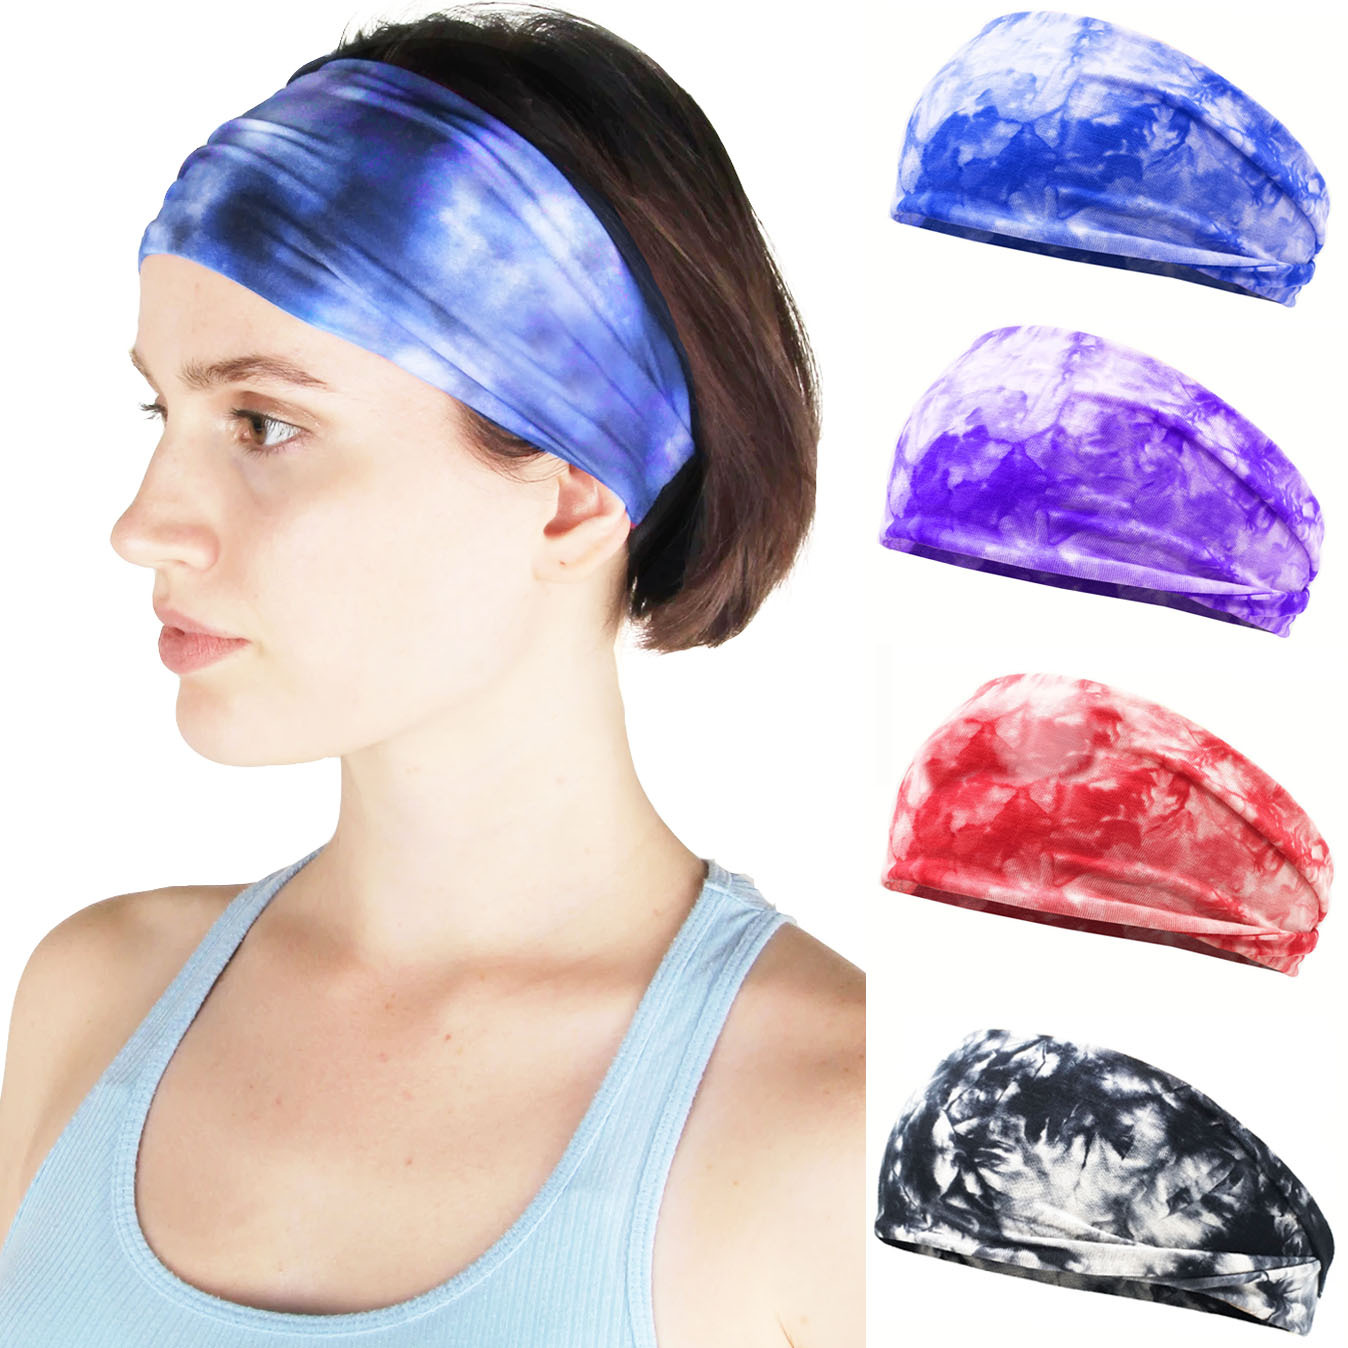 Amazon best selling sports <strong>headband</strong> men's <strong>headband</strong> fitness sweat yoga running harness <strong>headband</strong>